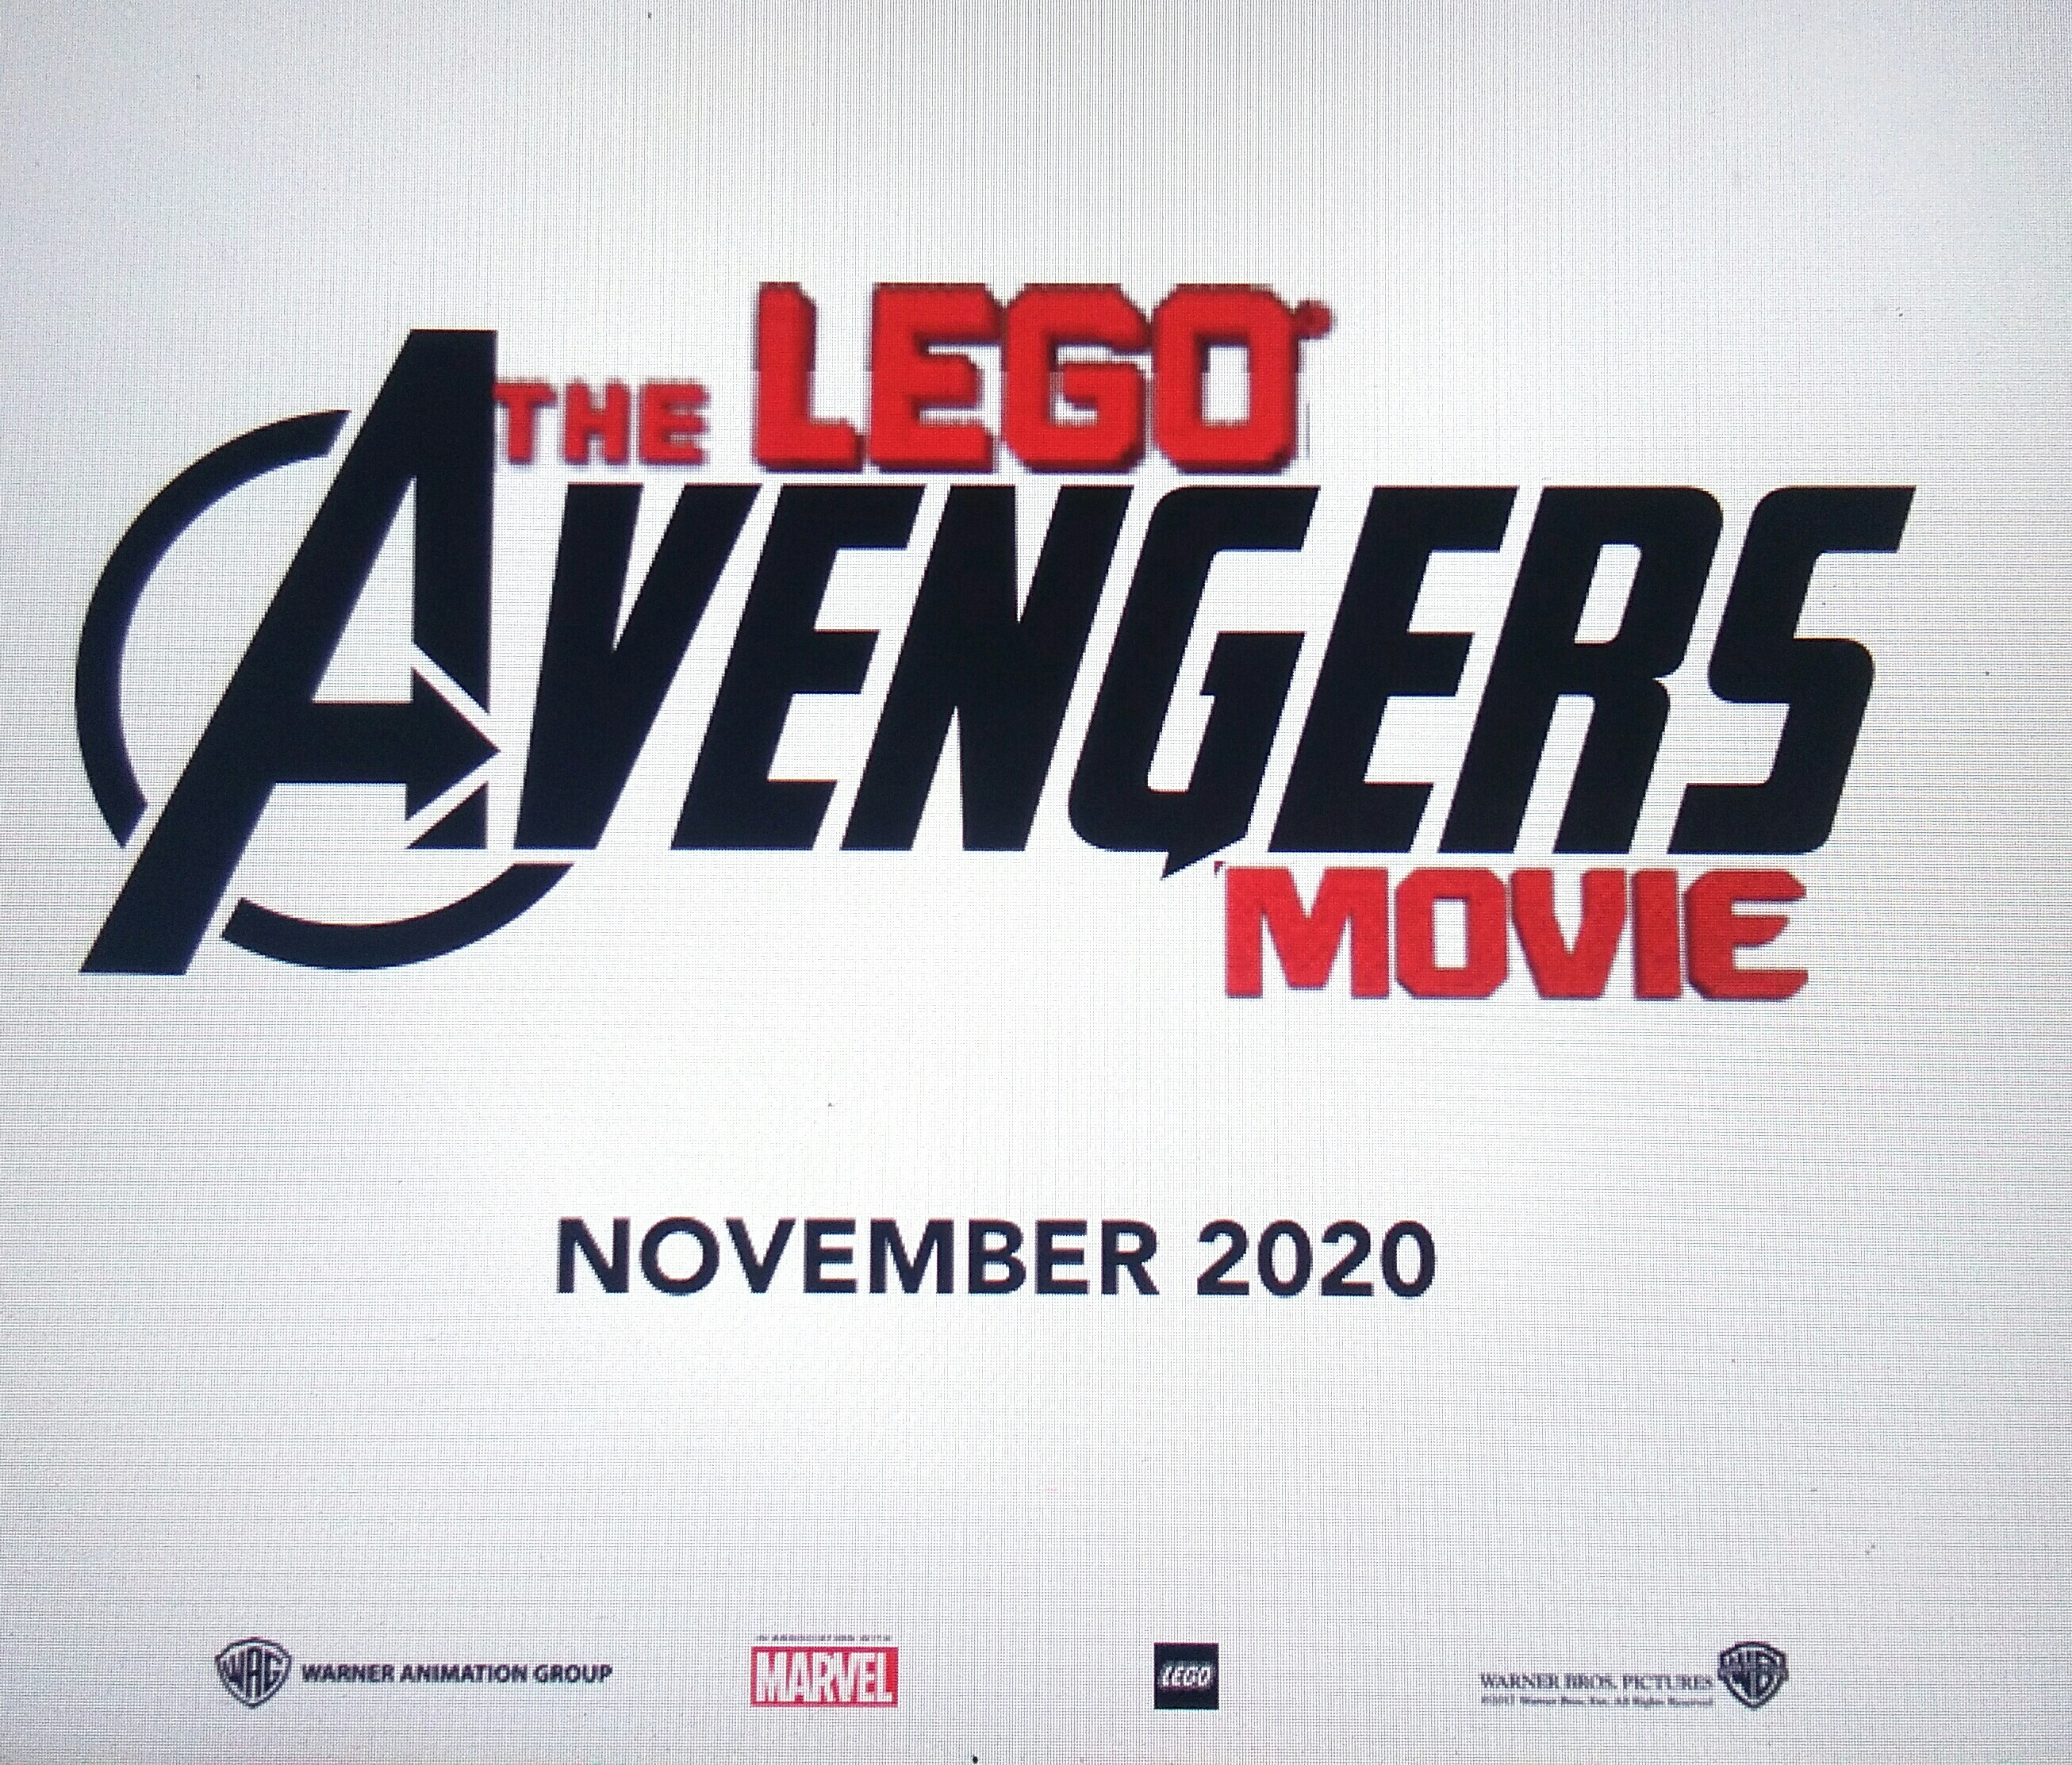 The LEGO Avengers Movie